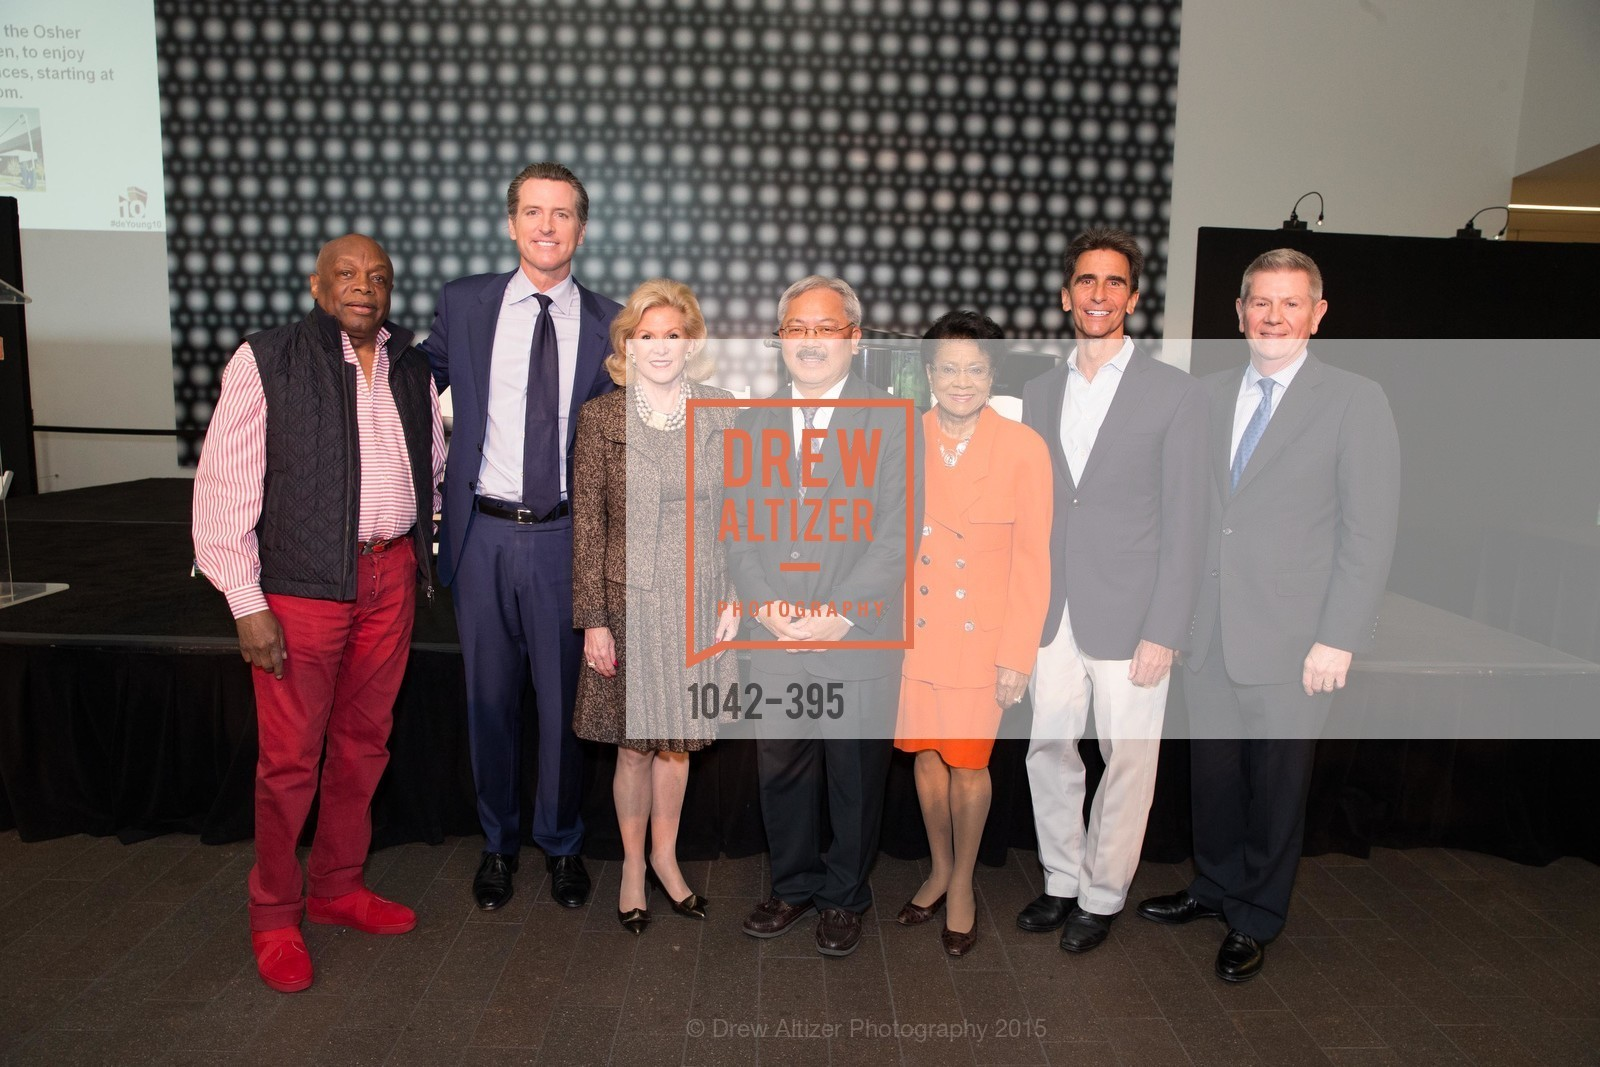 Willie Brown, Gavin Newsom, Dede Wilsey, Ed Lee, Belva Davis, Mark Leno, Richard Benefield, 10th Anniversary of the new de Young: Community Day, de Young Museum, October 17th, 2015,Drew Altizer, Drew Altizer Photography, full-service agency, private events, San Francisco photographer, photographer california